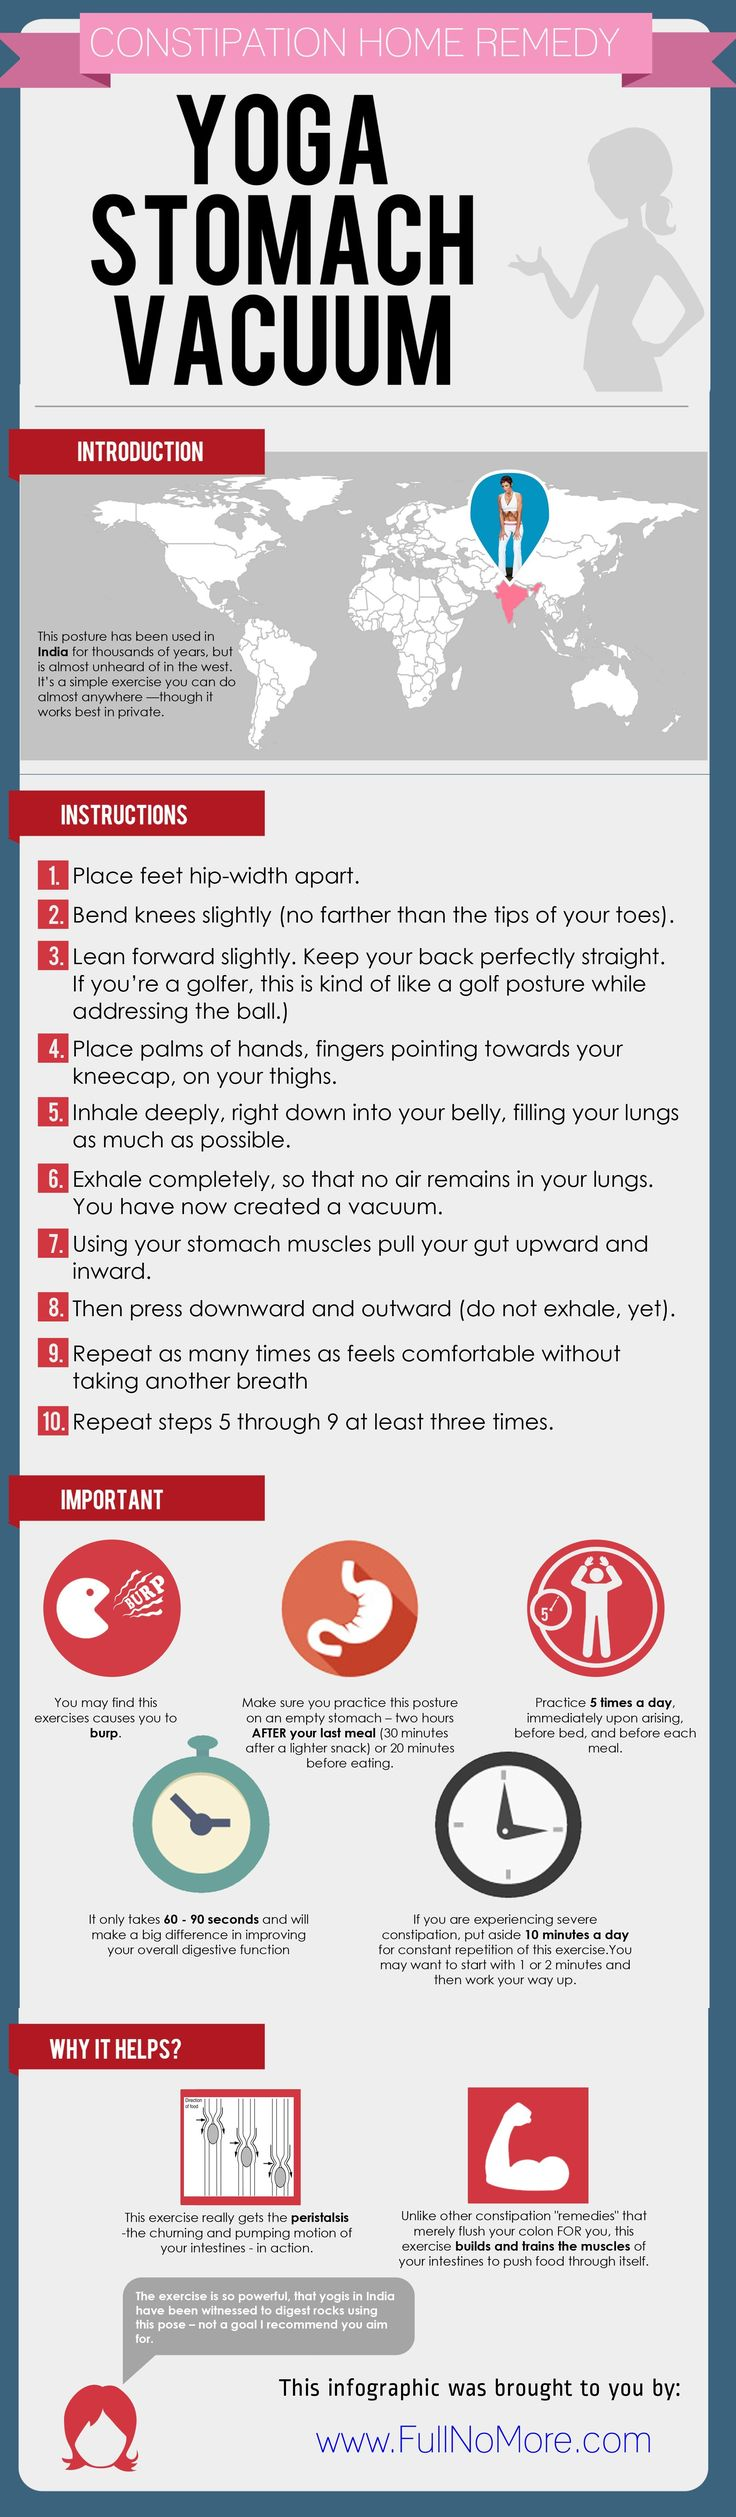 How to relieve constipation with yoga